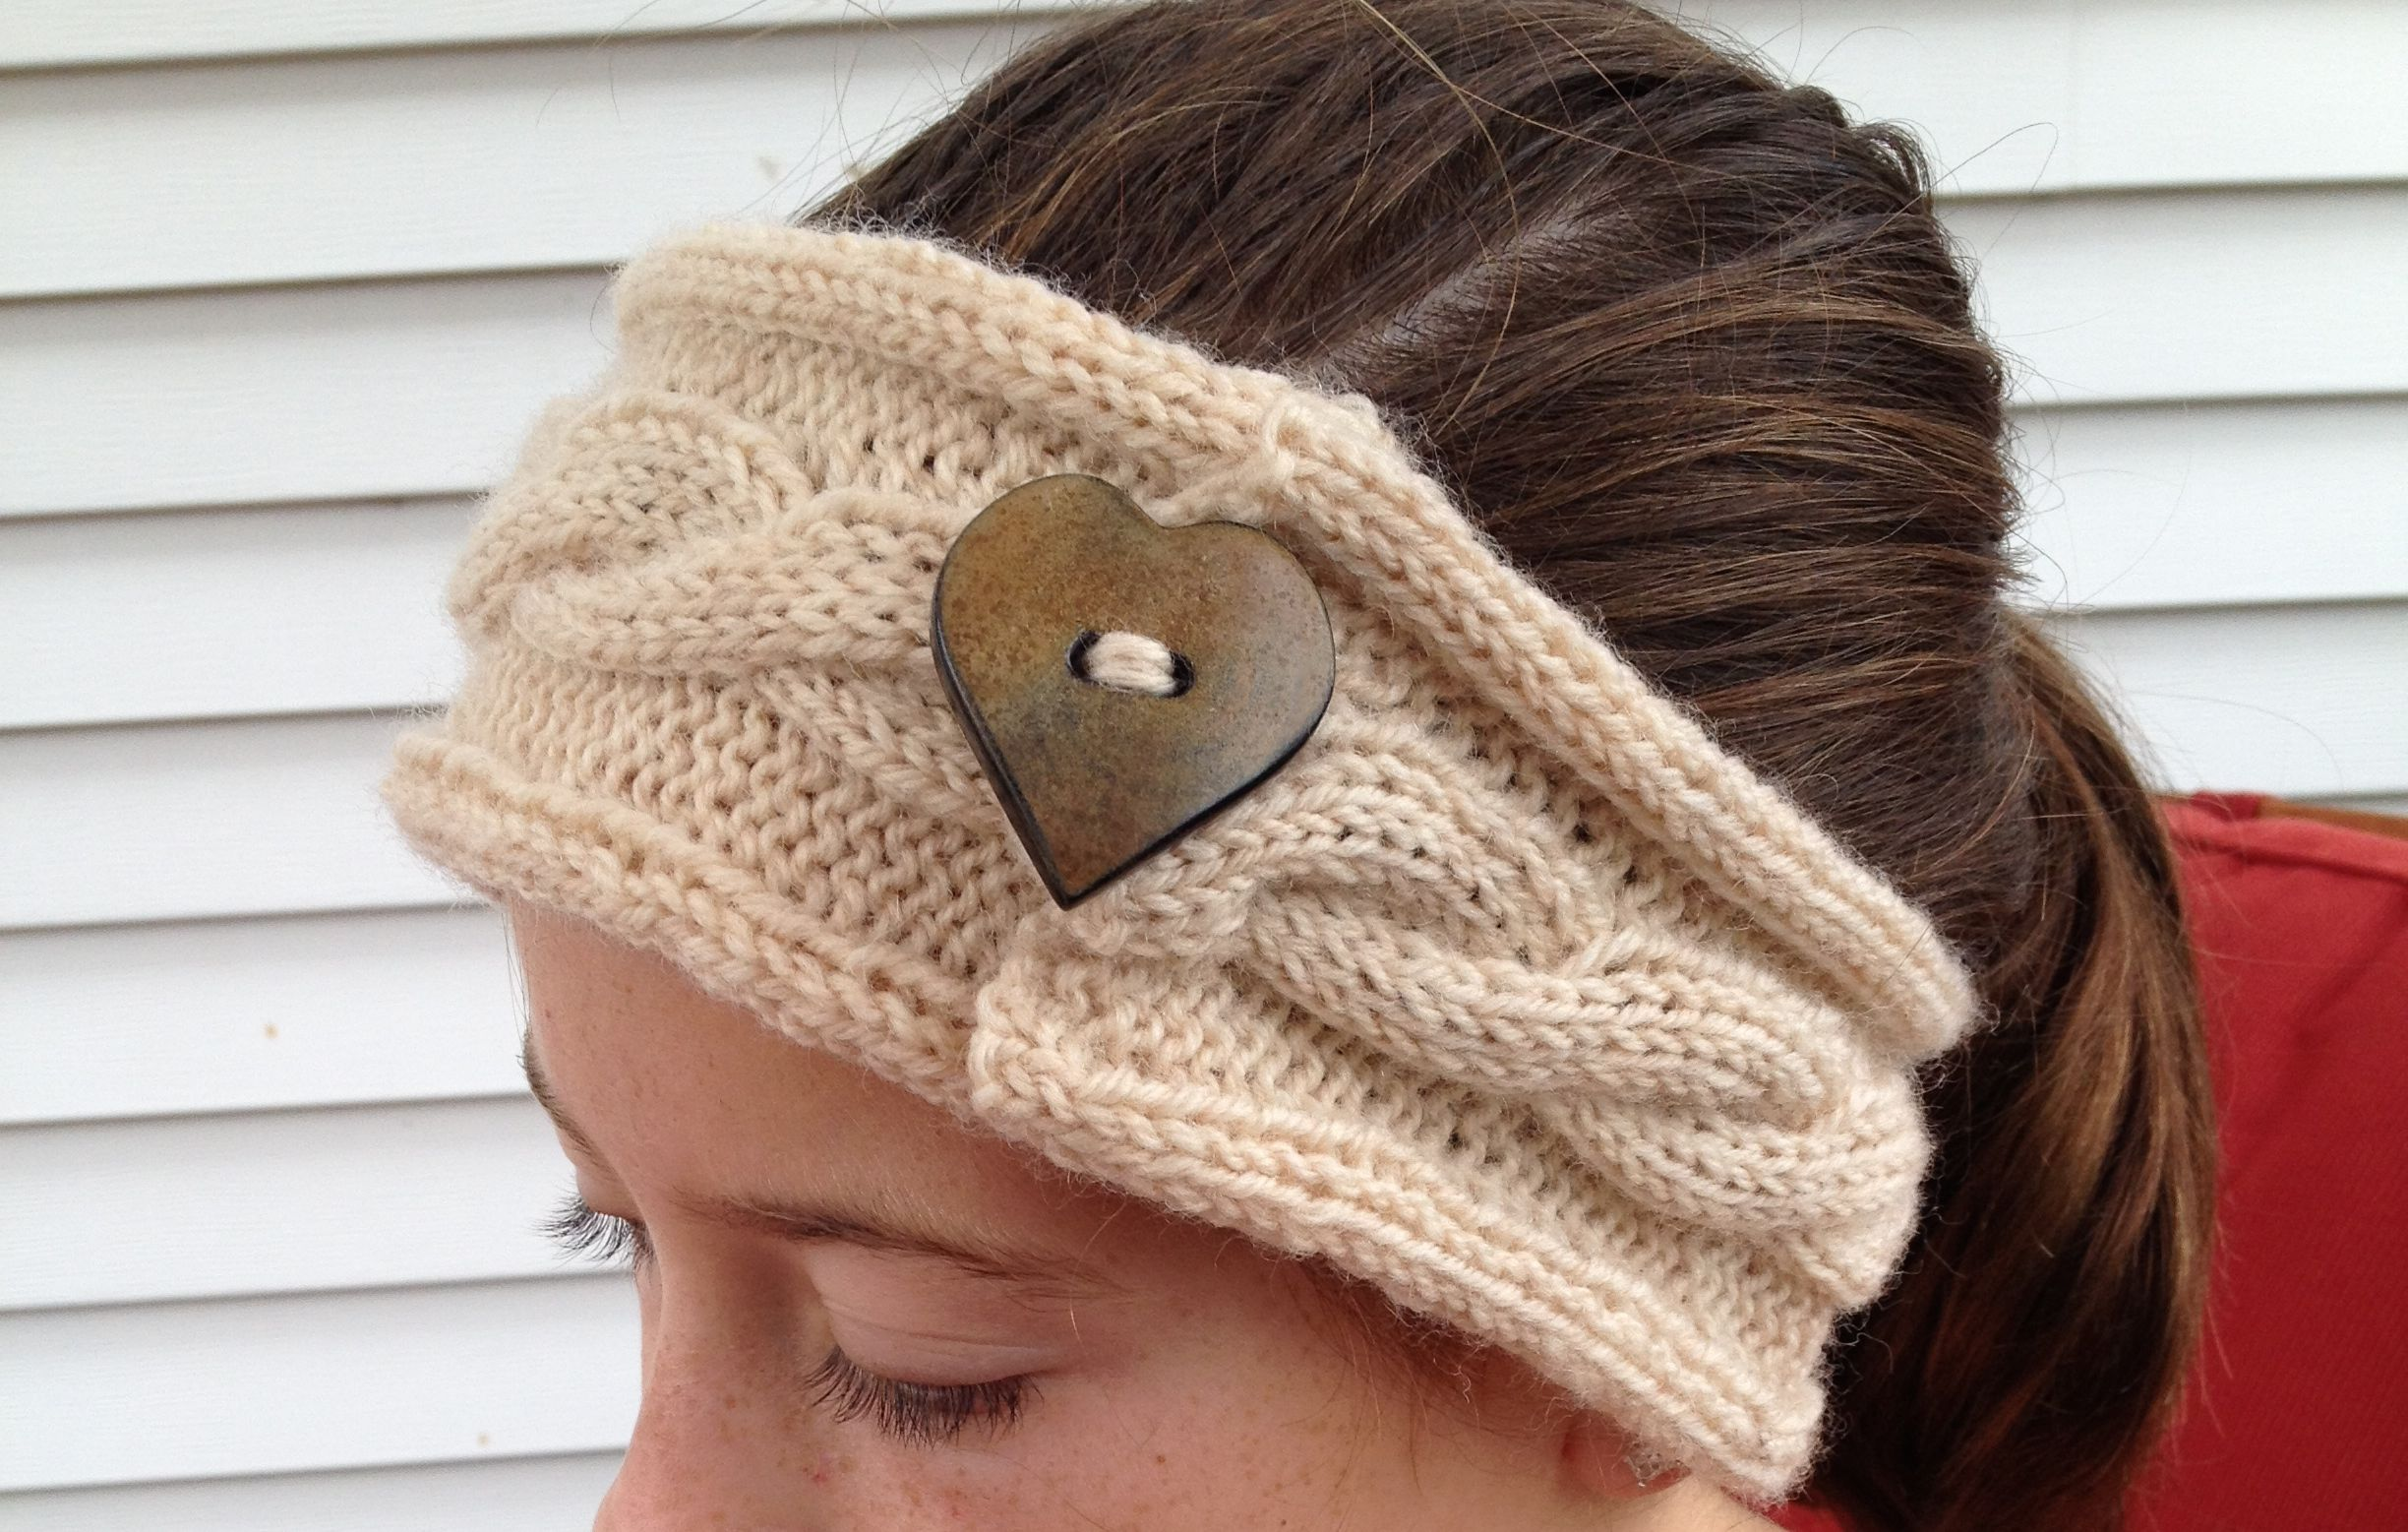 Free Knitting Pattern Headband : Knit Headband Patterns with Button A Knitting Blog